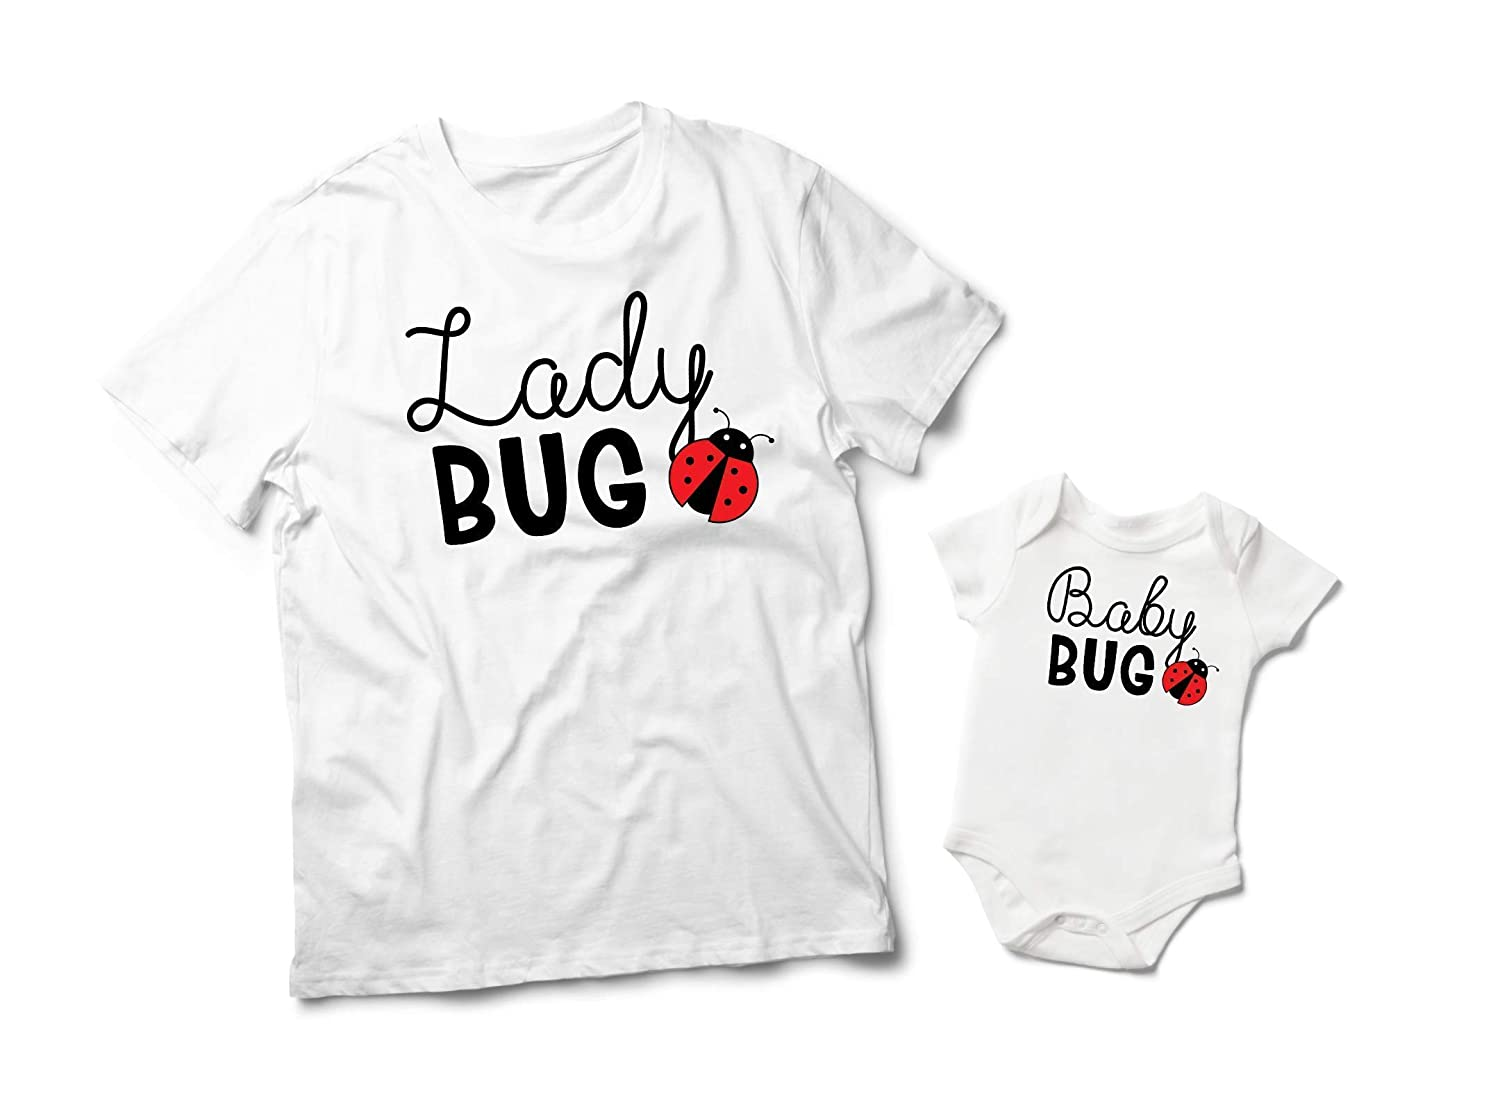 Ladybug Mother Daughter Matching Max 61% OFF Outfits Baby Shirts Ranking TOP9 Lady Bug